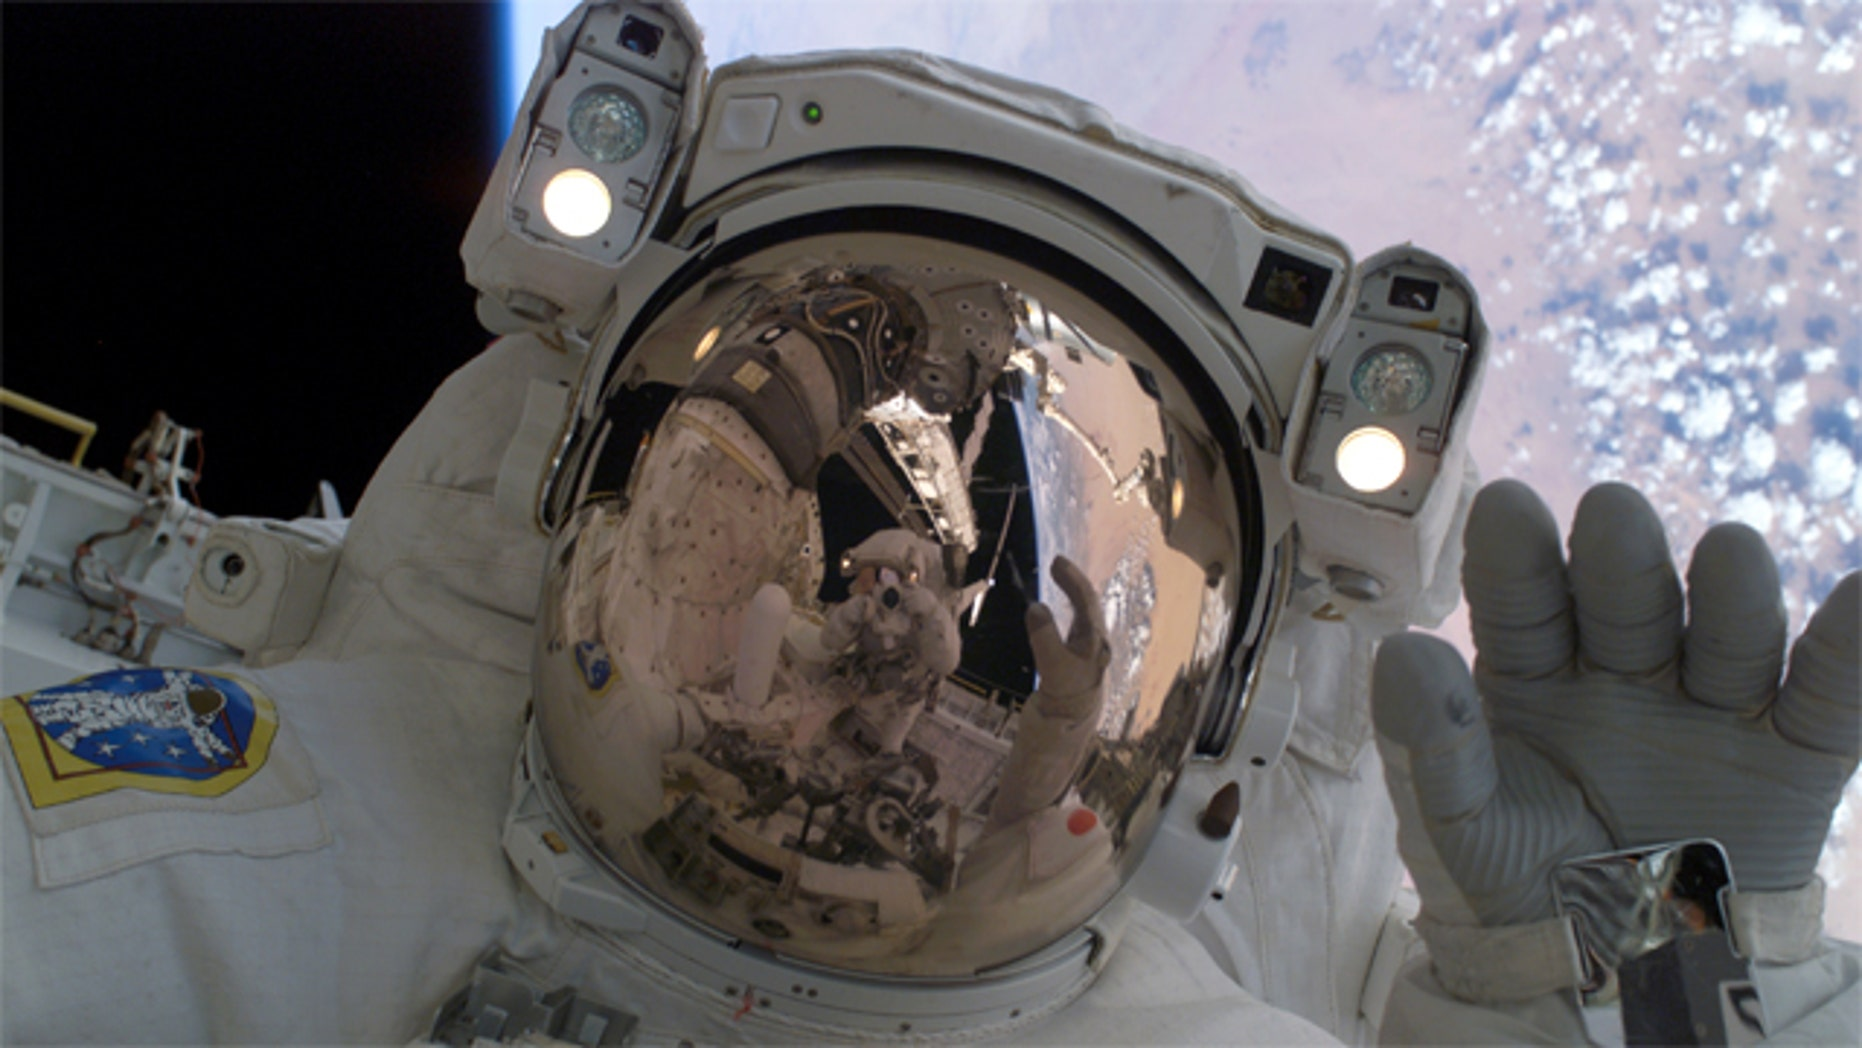 Could space travel cause permanent eye damage?